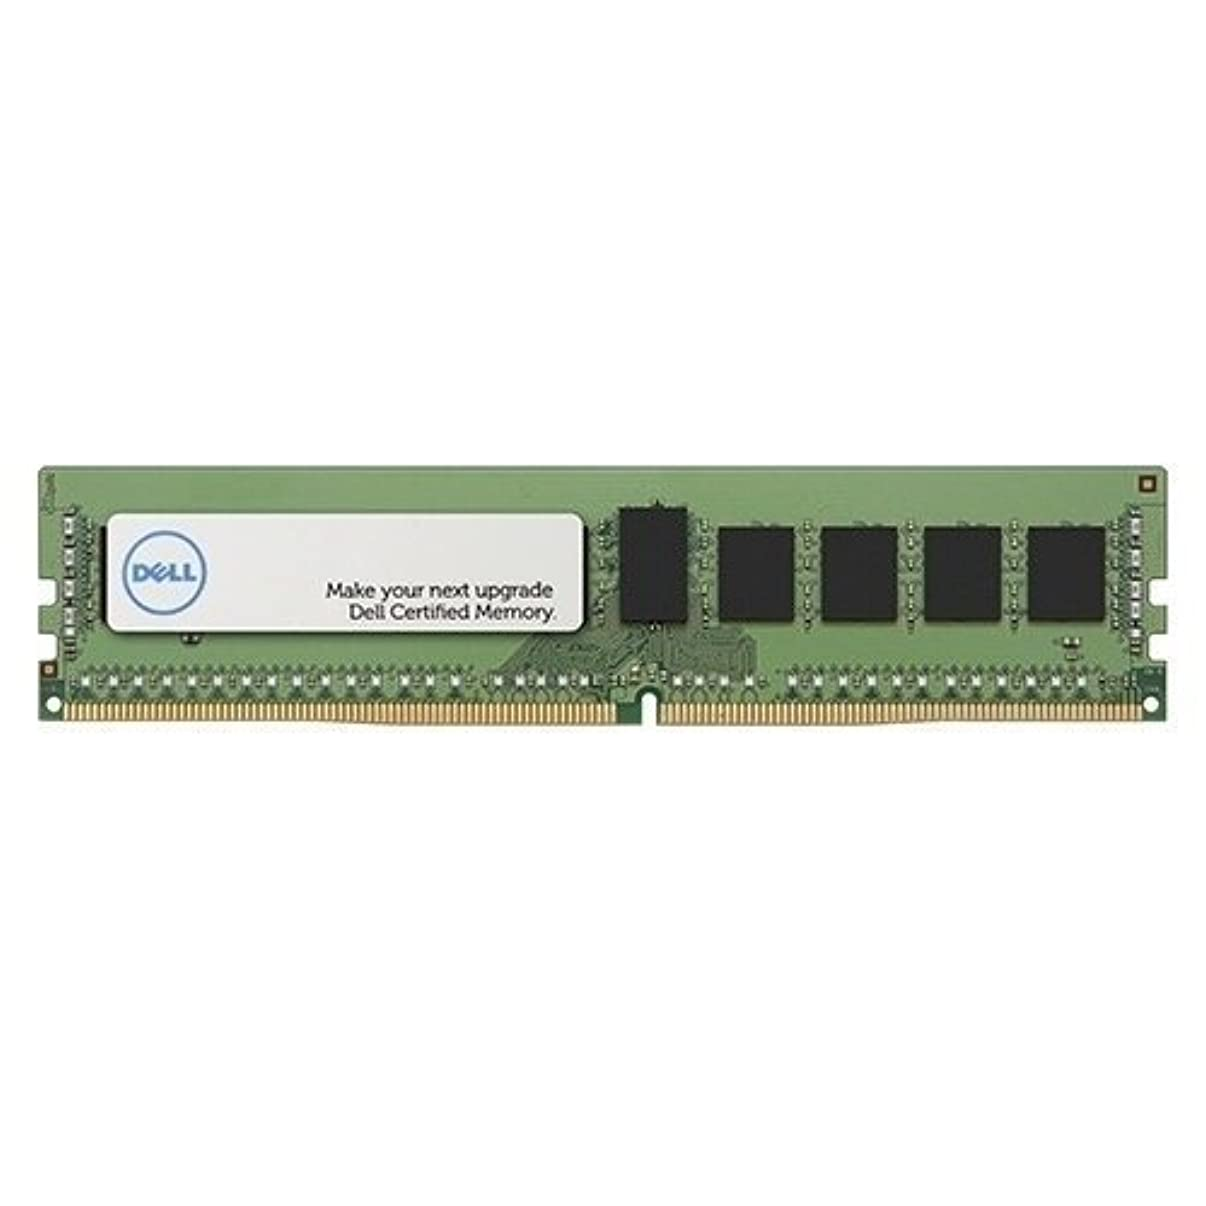 Dell 8 GB Certified Memory Module - 1Rx8 DDR4 RDIMM 2400MHz (Renewed)